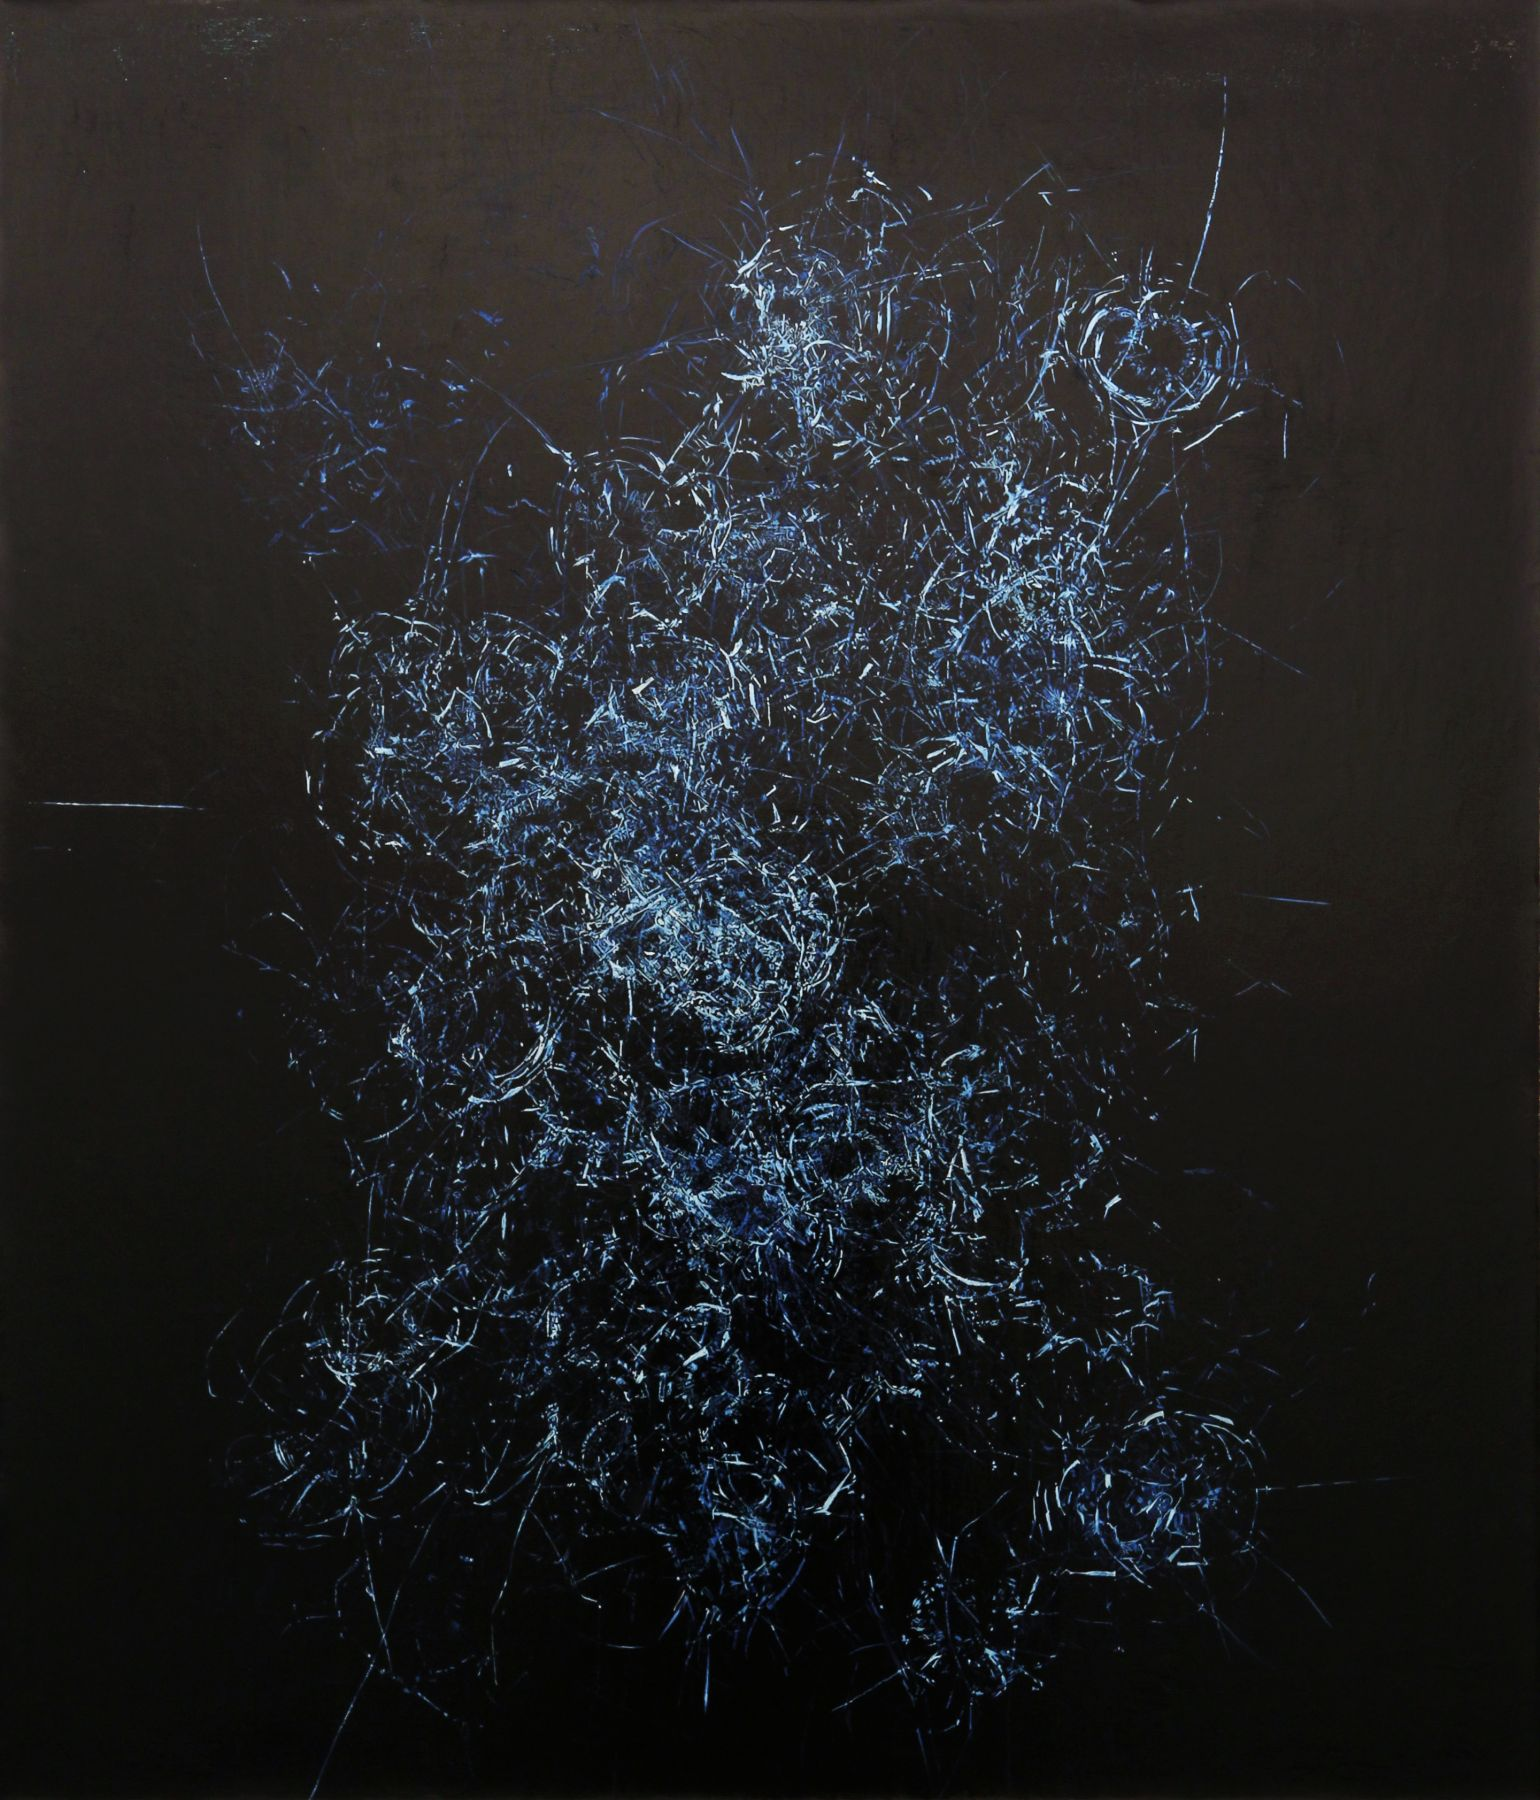 Zhao Zhao 赵赵 (b. 1982), Constellations No.3 æ˜Ÿç©º No.3, 2013